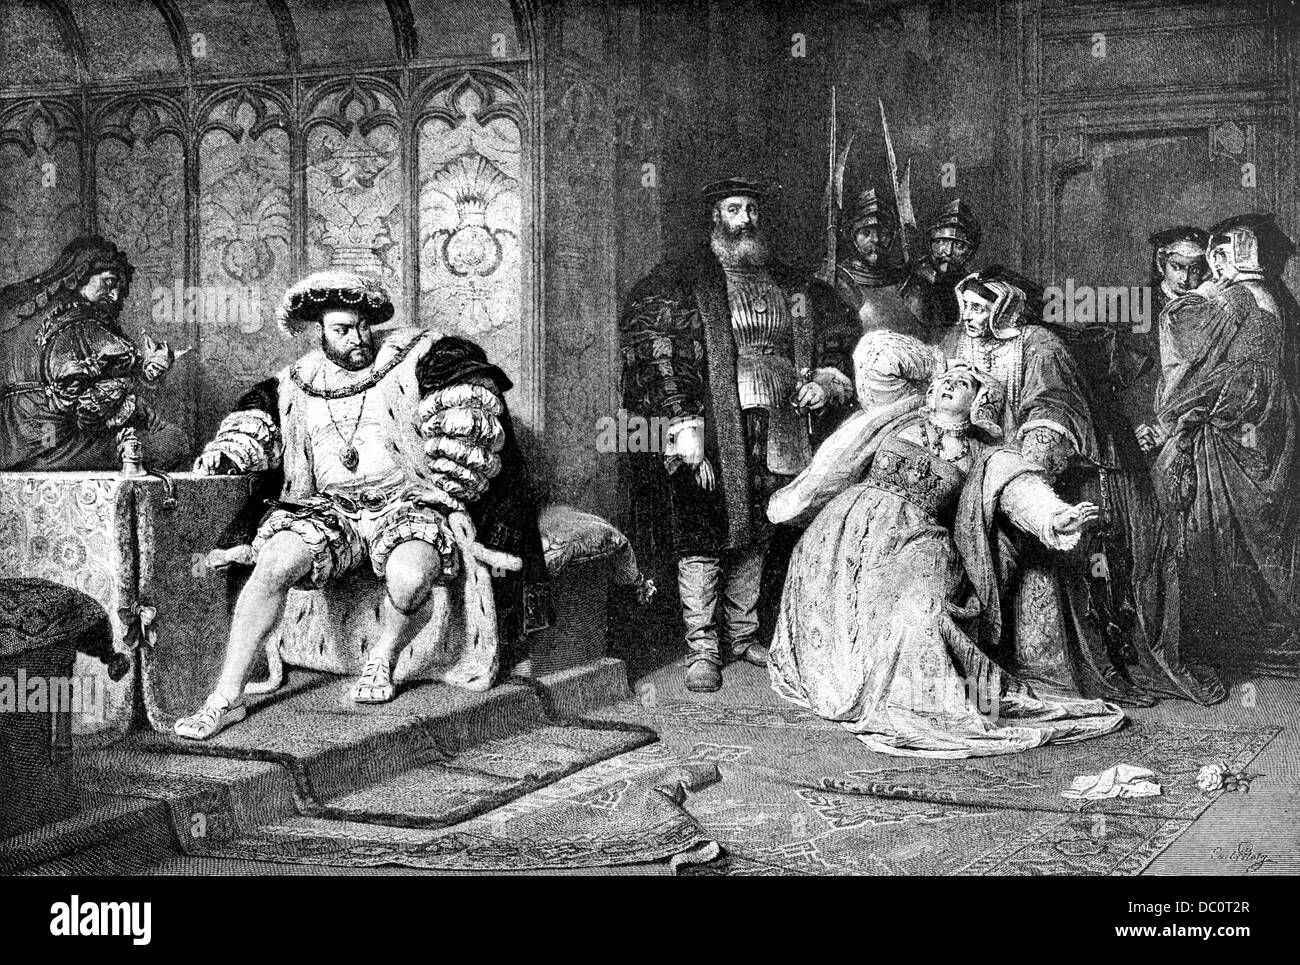 1500s KING OF ENGLAND HENRY VIII TELLING ANNE BOLEYN QUEEN CONSORT MOTHER OF ELIZABETH I OF HER SORRY FATE BEHEADED - Stock Image